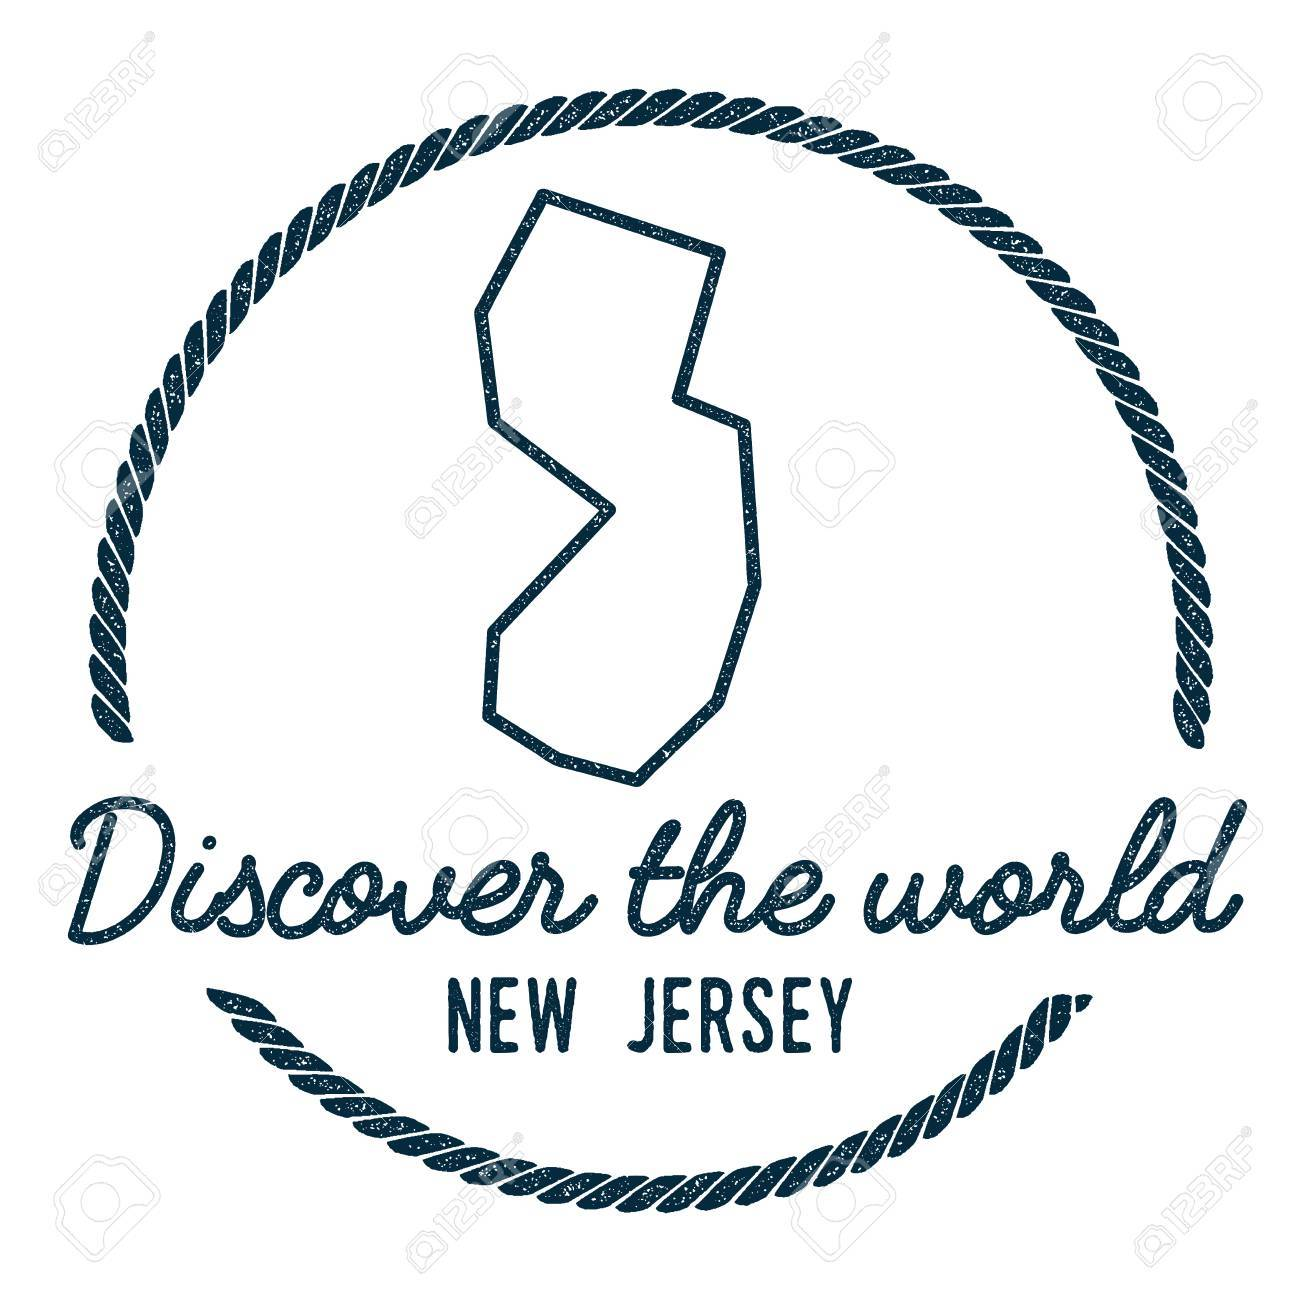 New Jersey Map Outline  Vintage Discover the World Rubber Stamp